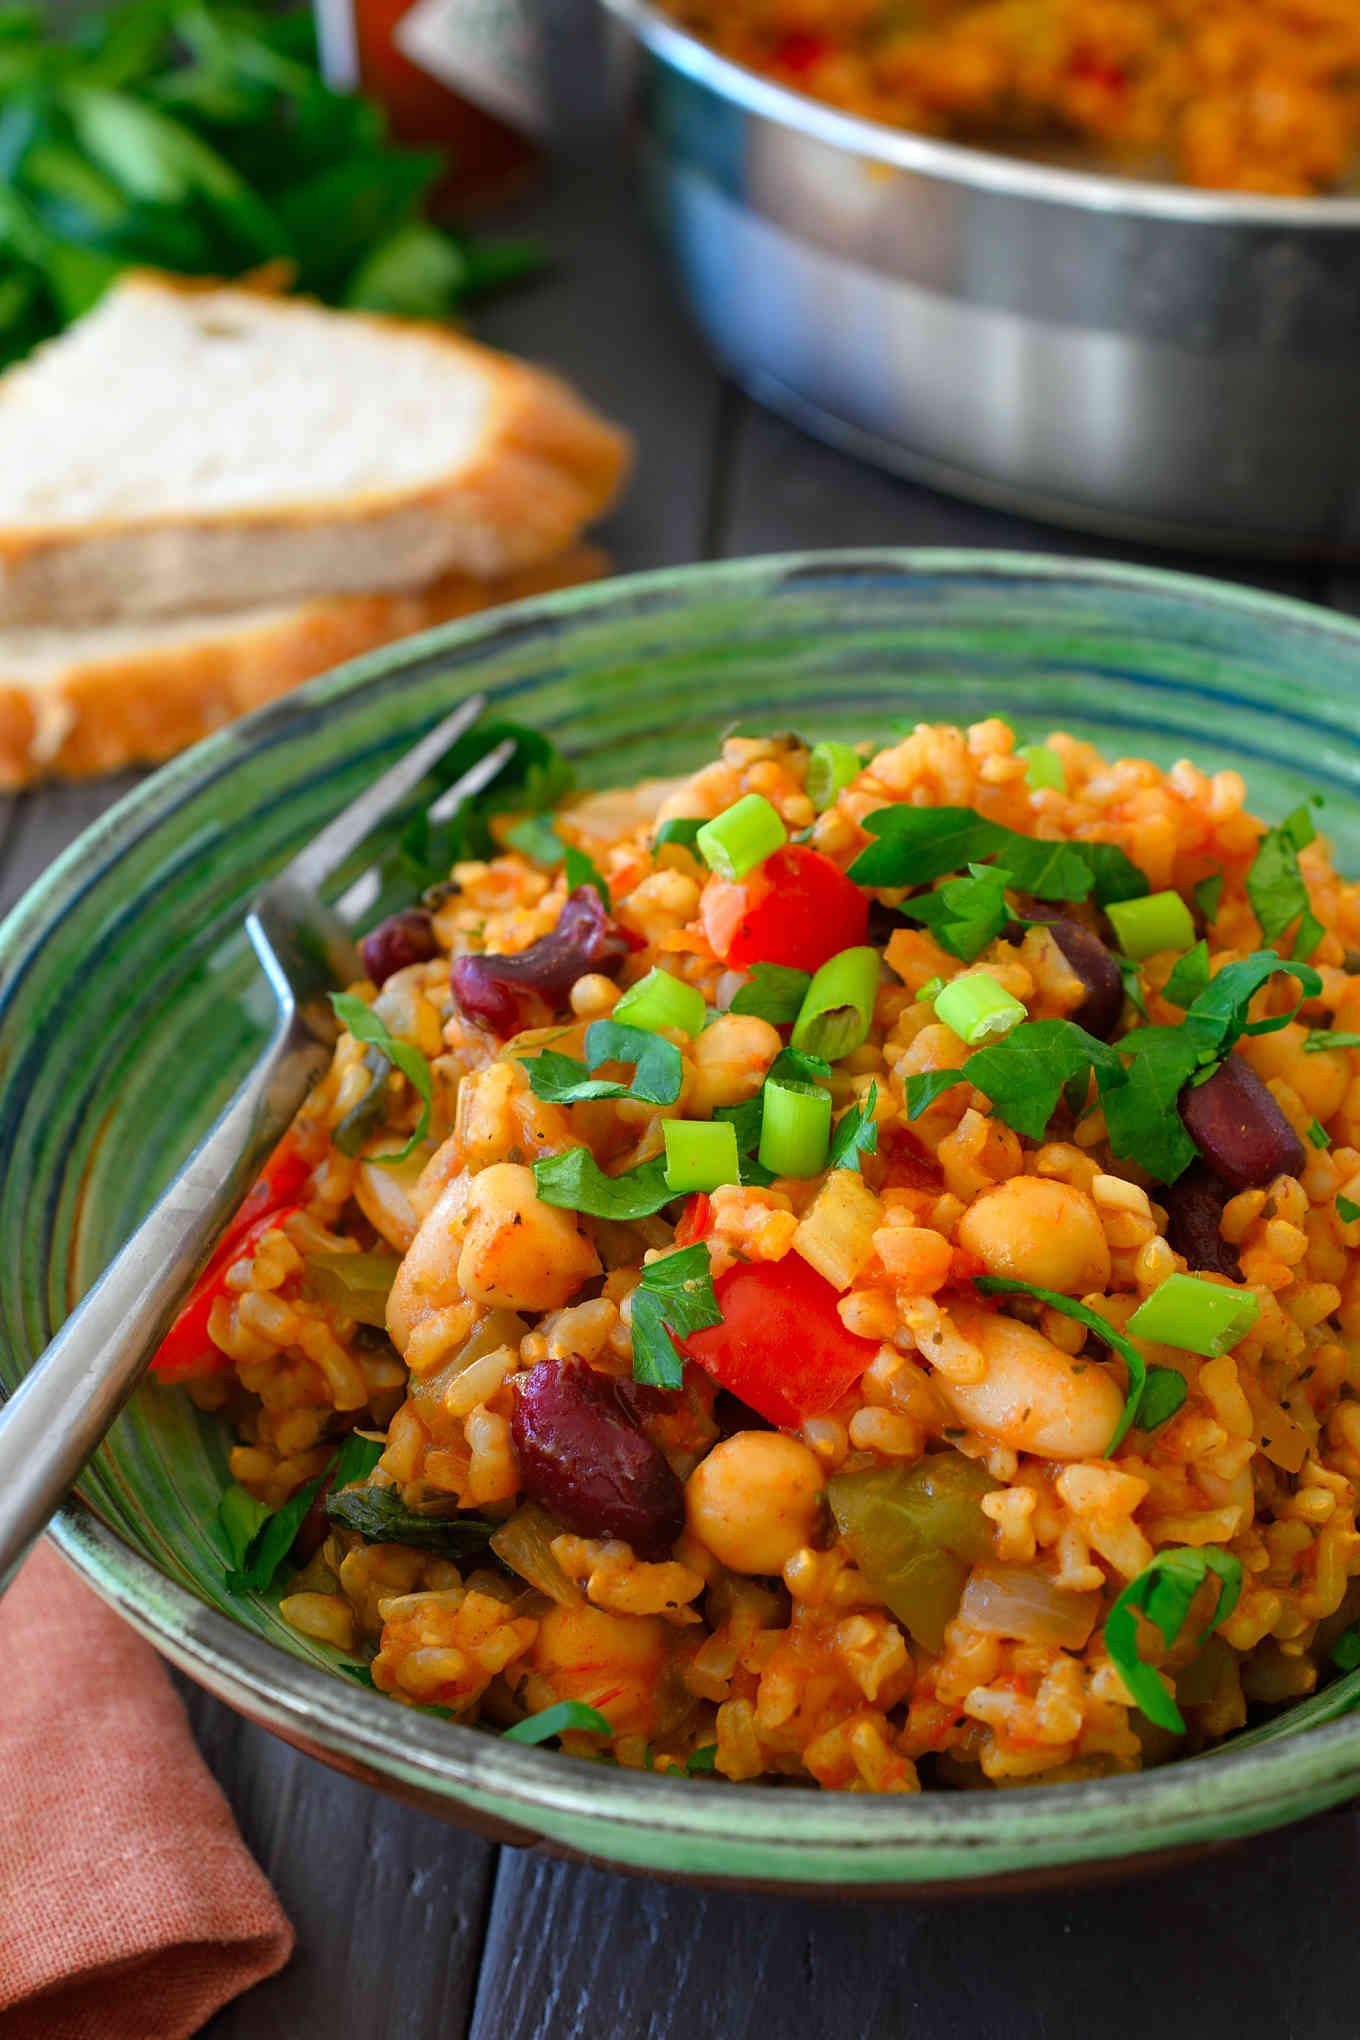 This vegan jambalaya recipe is super easy to make with basic pantry staples. Tomato-y rice flavoured with loads of herbs and spices and bulked up with celery, peppers and a selection of mixed beans make a hearty, warming and filling quick weeknight lunch or dinner.